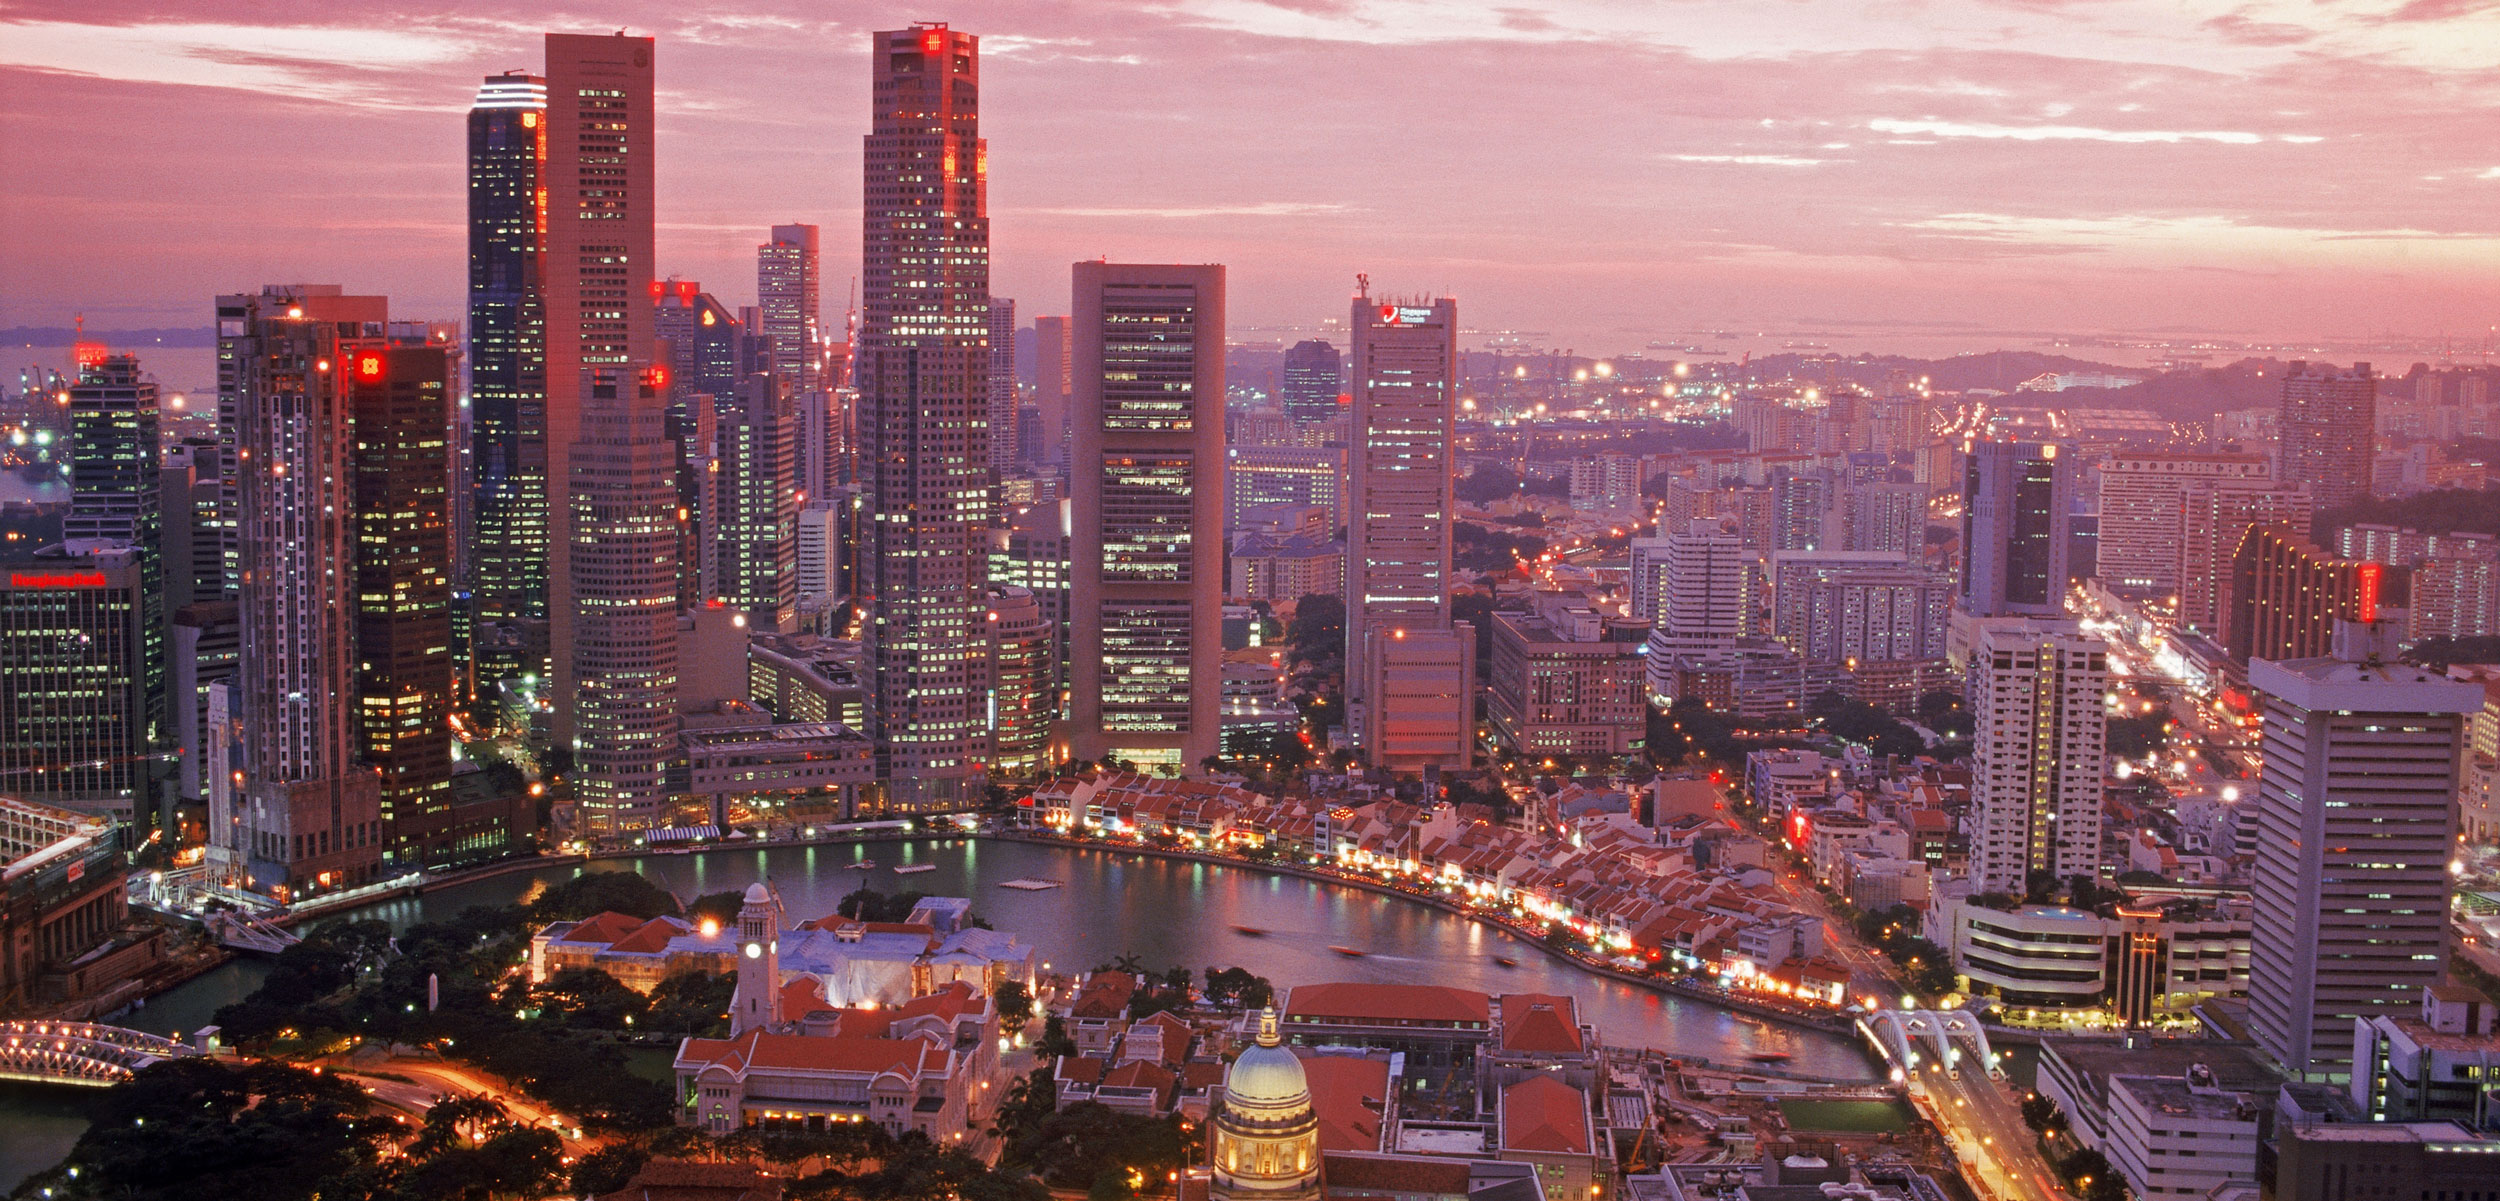 Central business district of Singapore at sunset